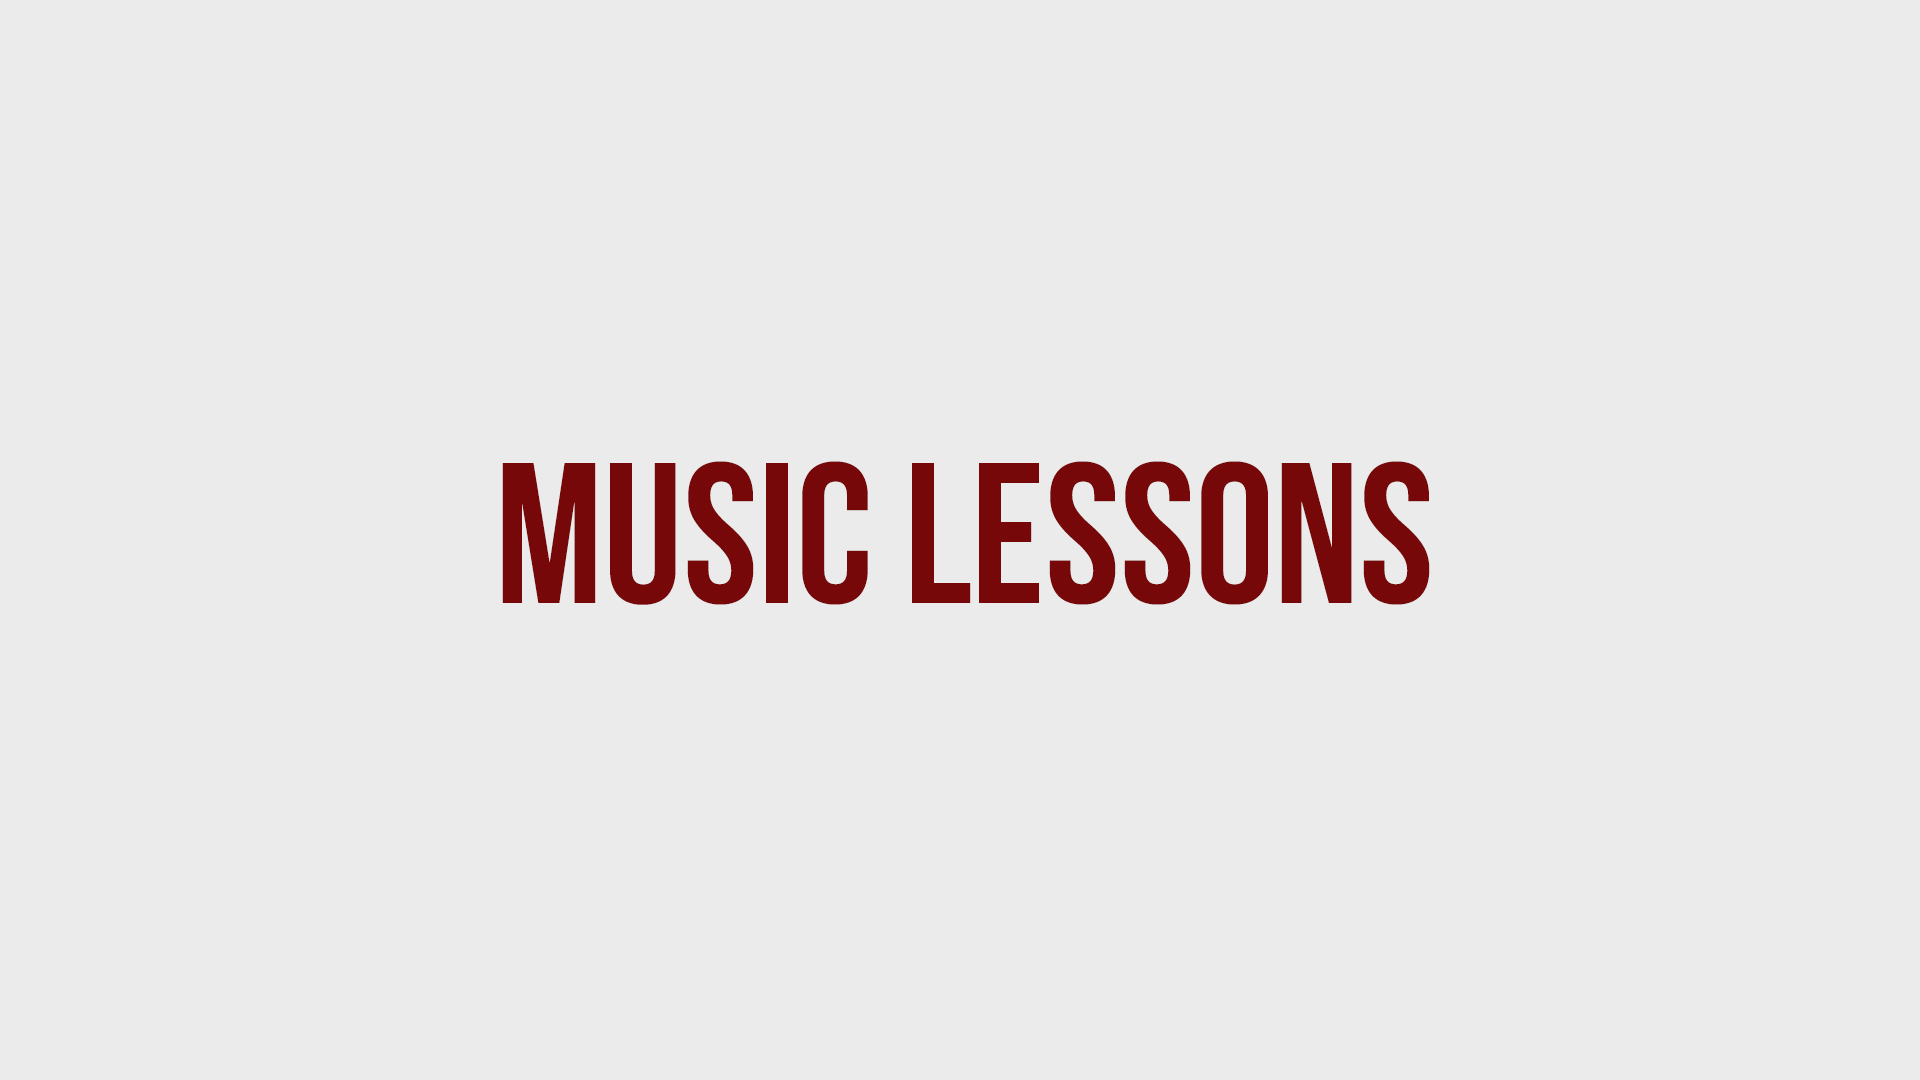 Premier Music Lessons - As a private studio, we believe in the importance of music education for all ages. It is our responsibility and duty to ensure that the highest quality of instruction be given to all students; develop appreciation for all genres of music; help to instill good self discipline and confidence within each student; and to build a lifetime of love for music and the arts.